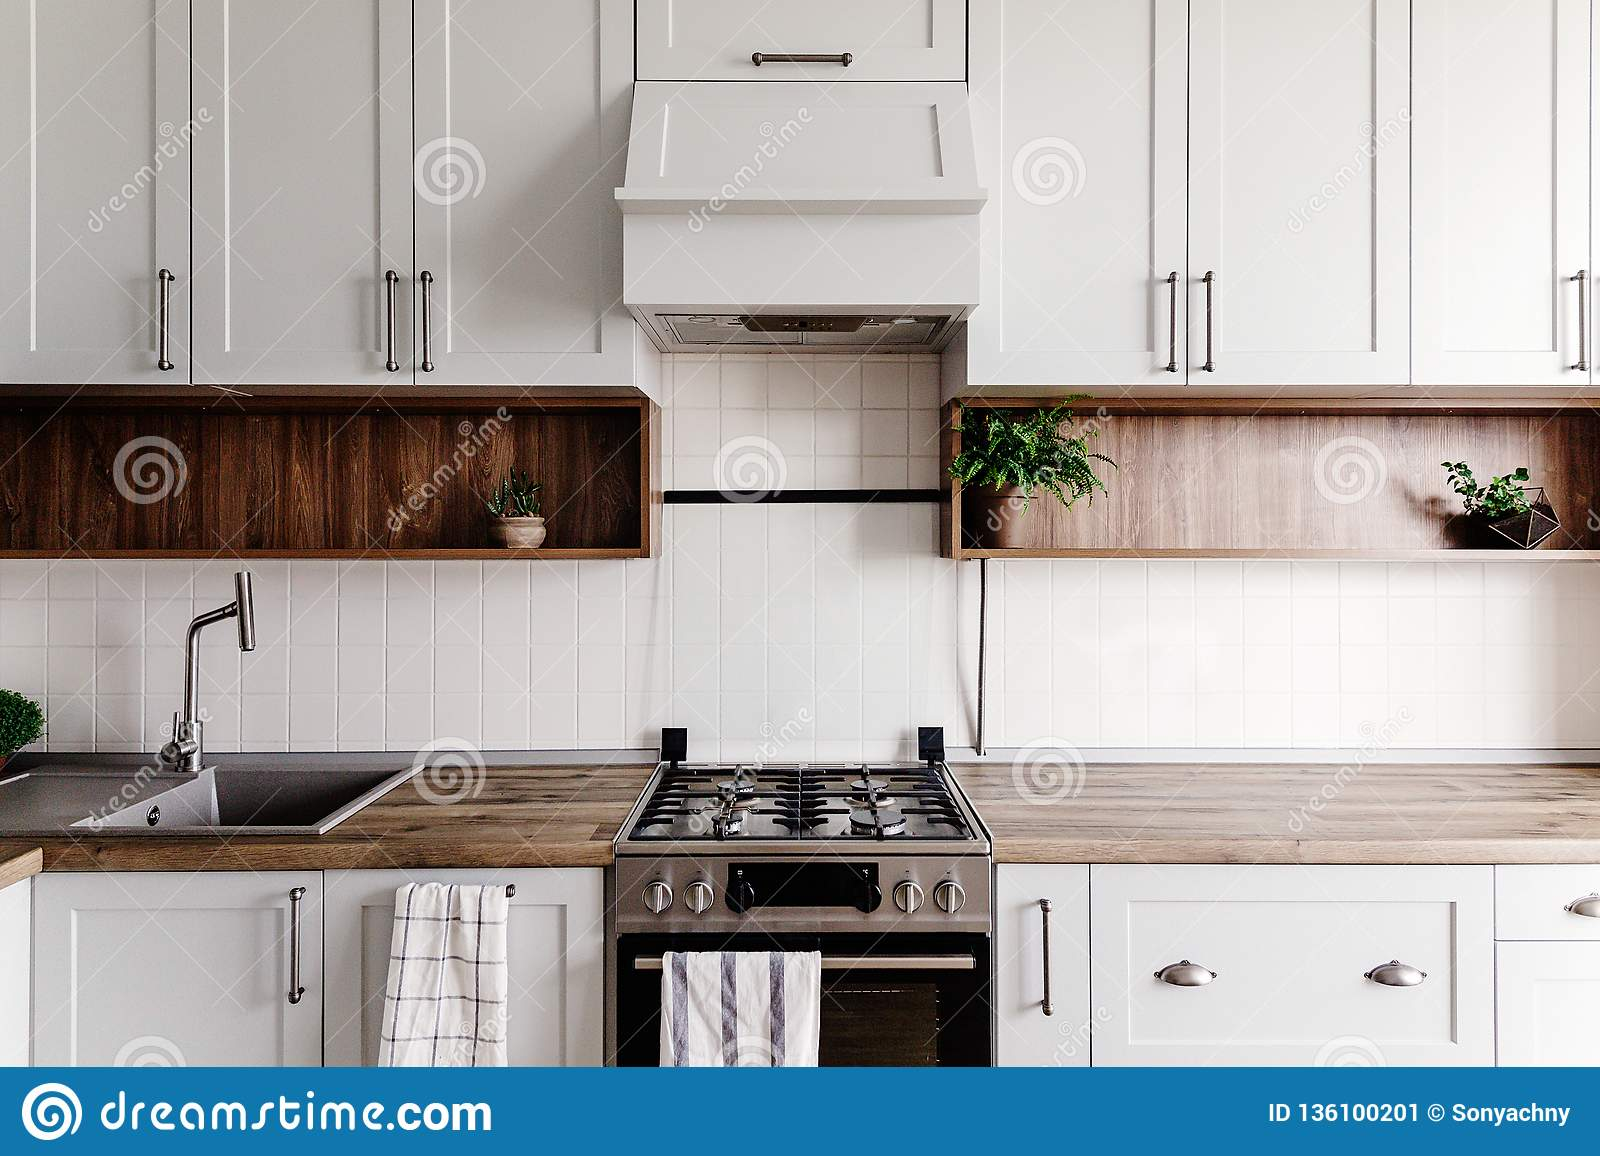 Luxury Modern Kitchen Furniture In Grey Color And Steel Oven Sink